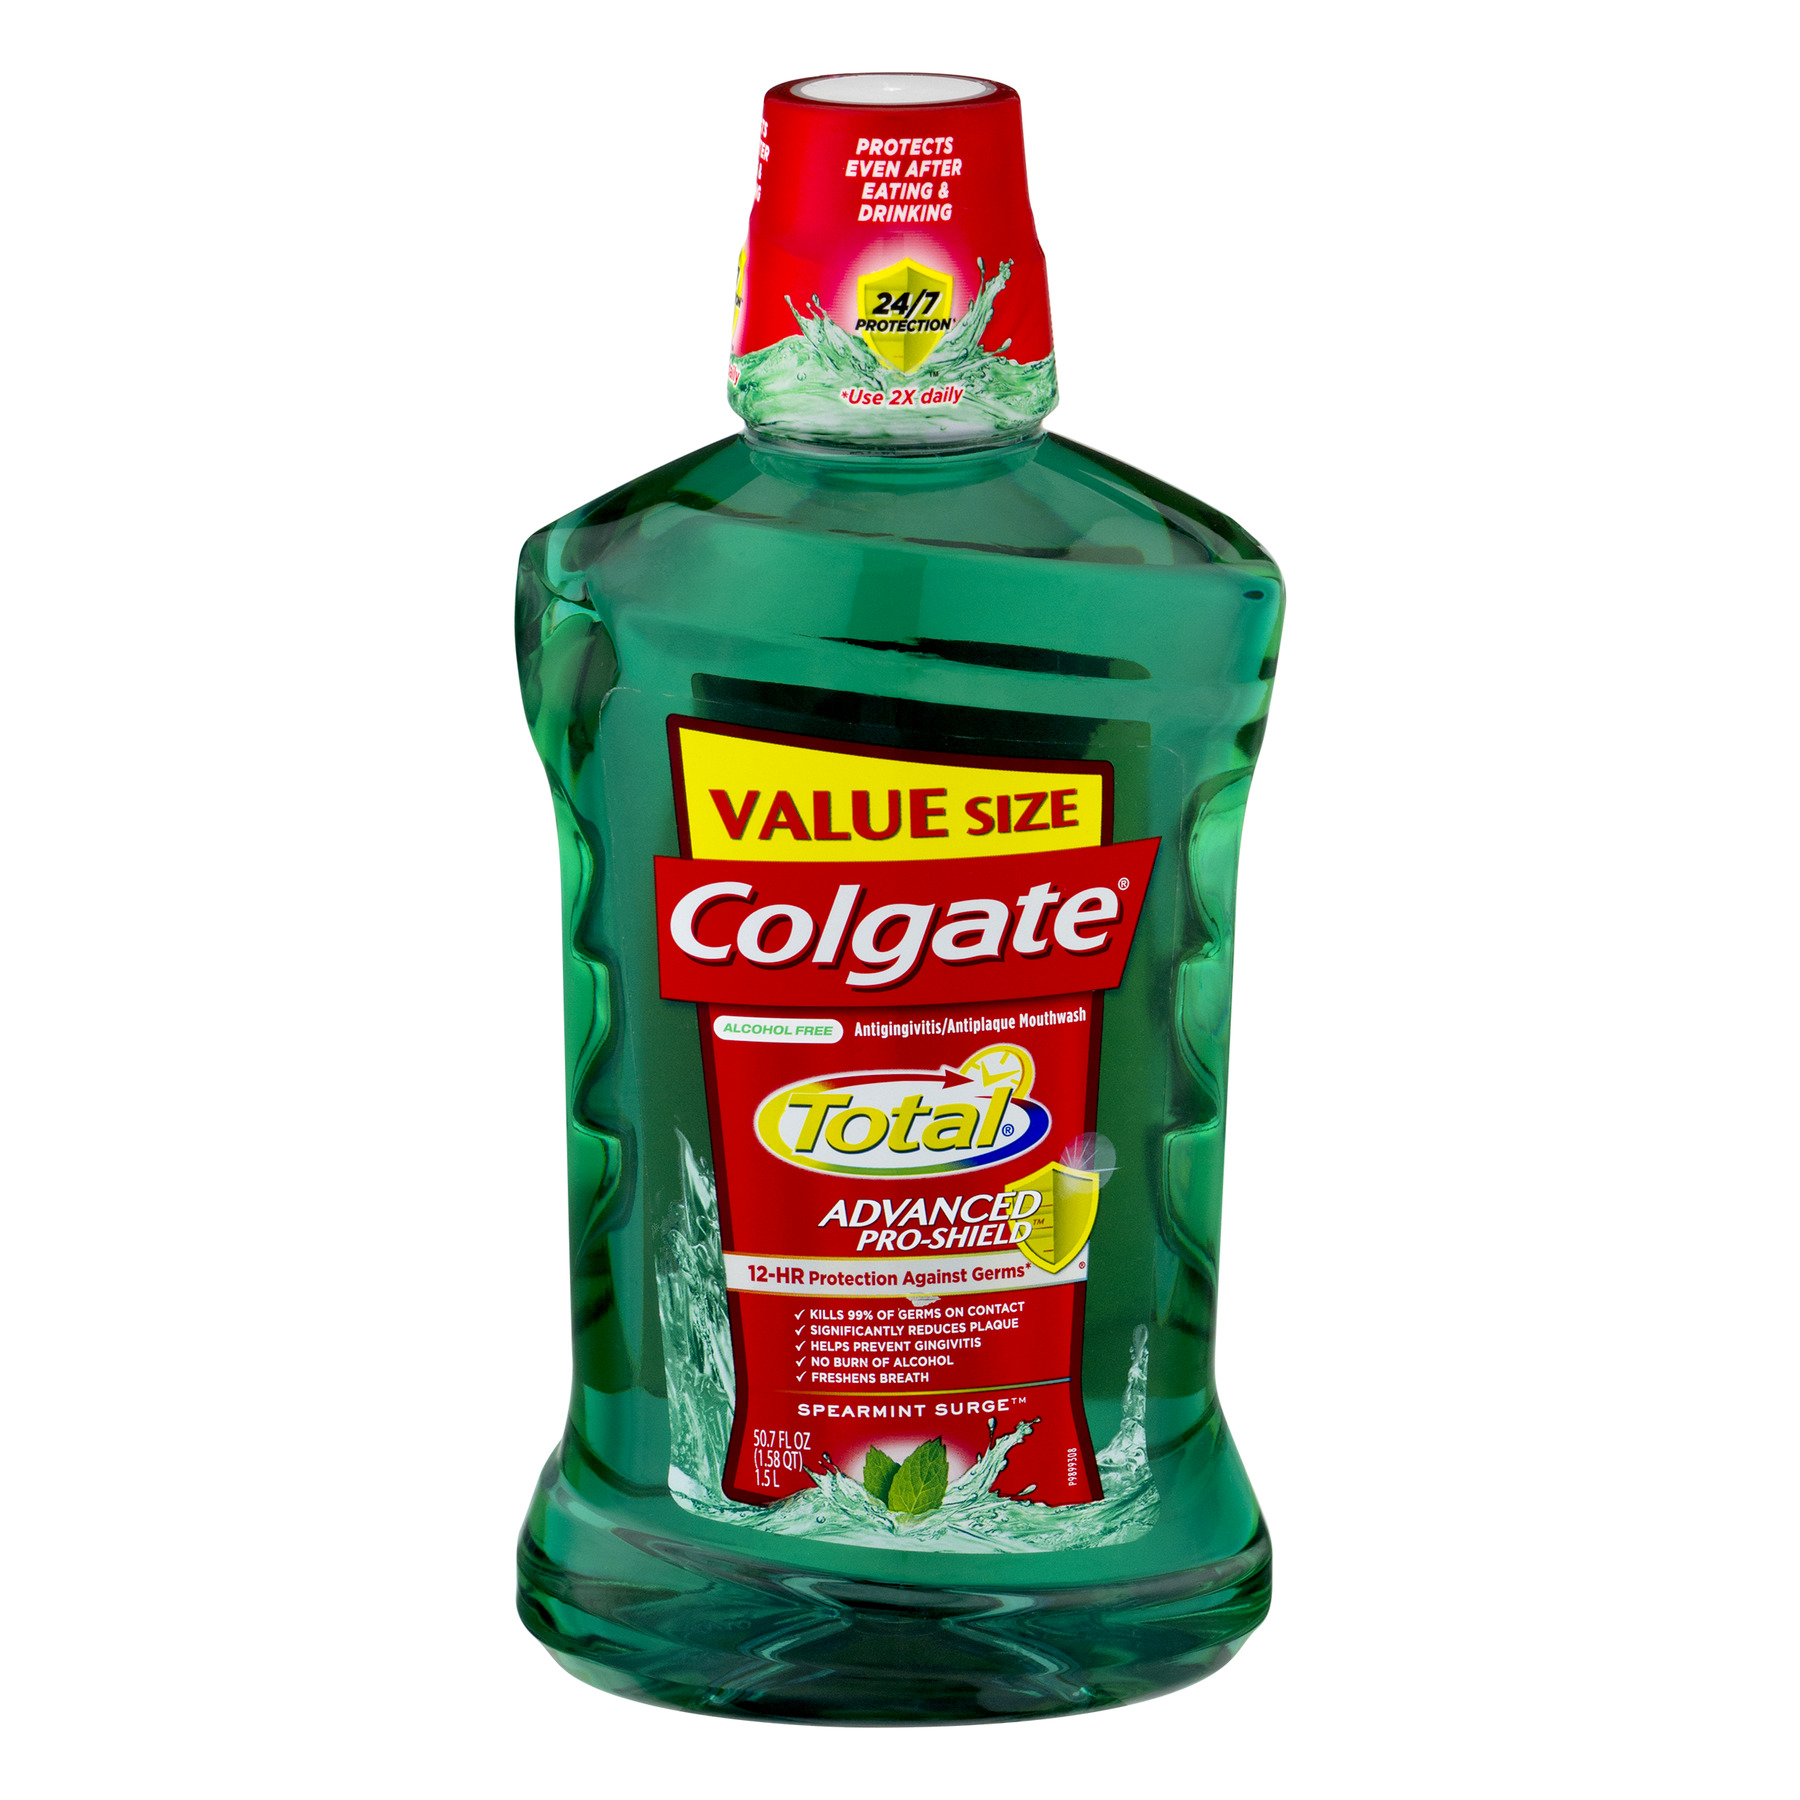 Colgate Total Pro-Shield Mouthwash, Spearmint - 1.5L, 50.7 fl oz